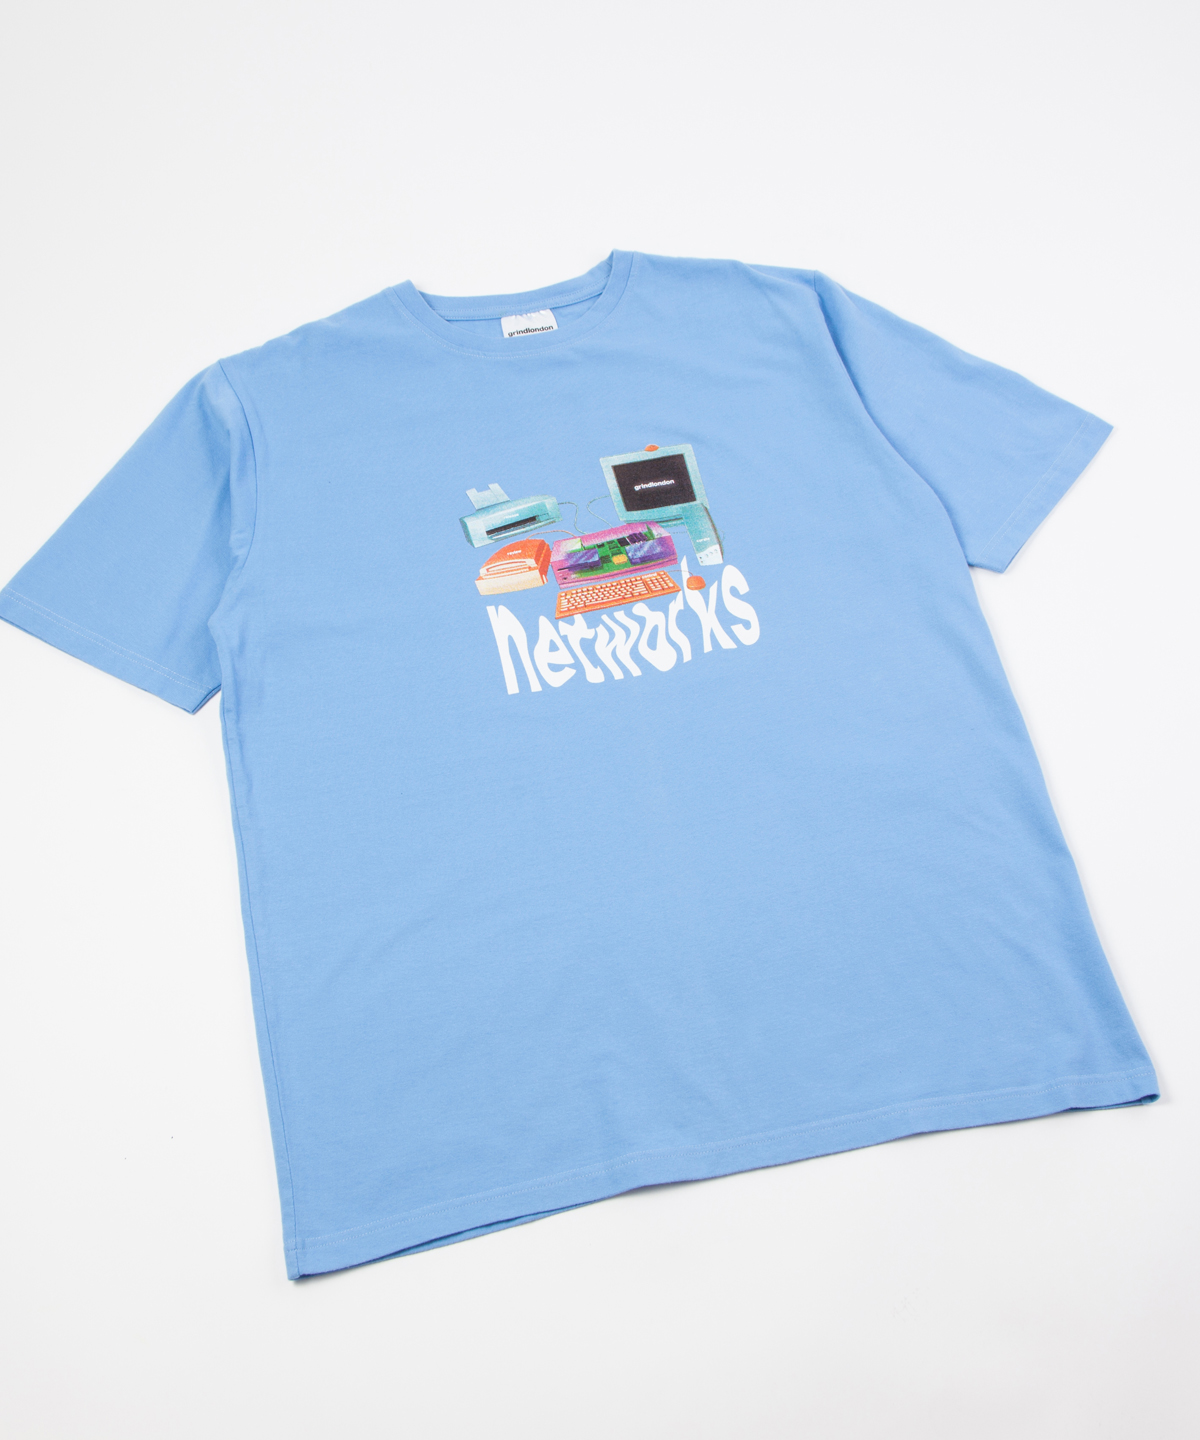 networks tee 2